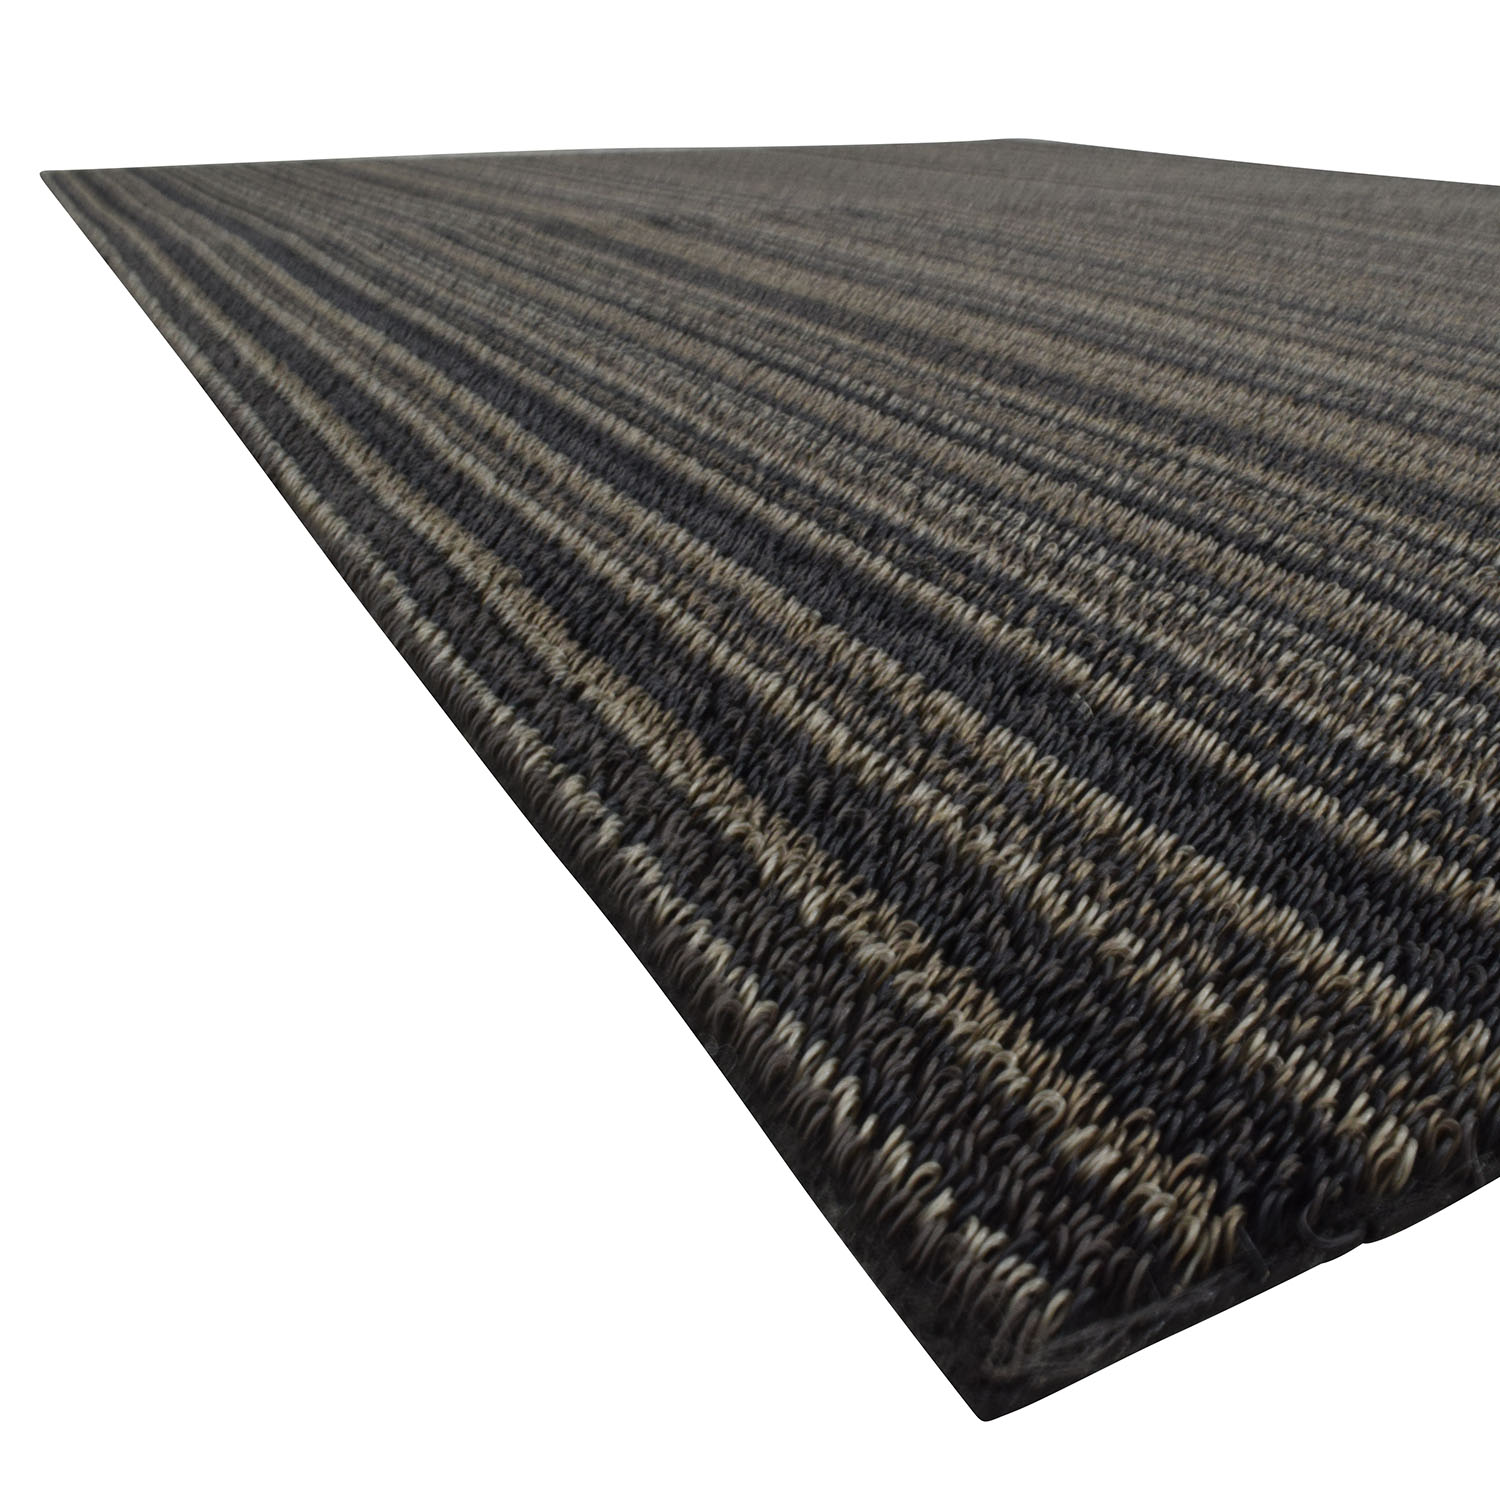 buy Crate and Barrel Crate & Barrel Chilewich Brown Striped Rug online